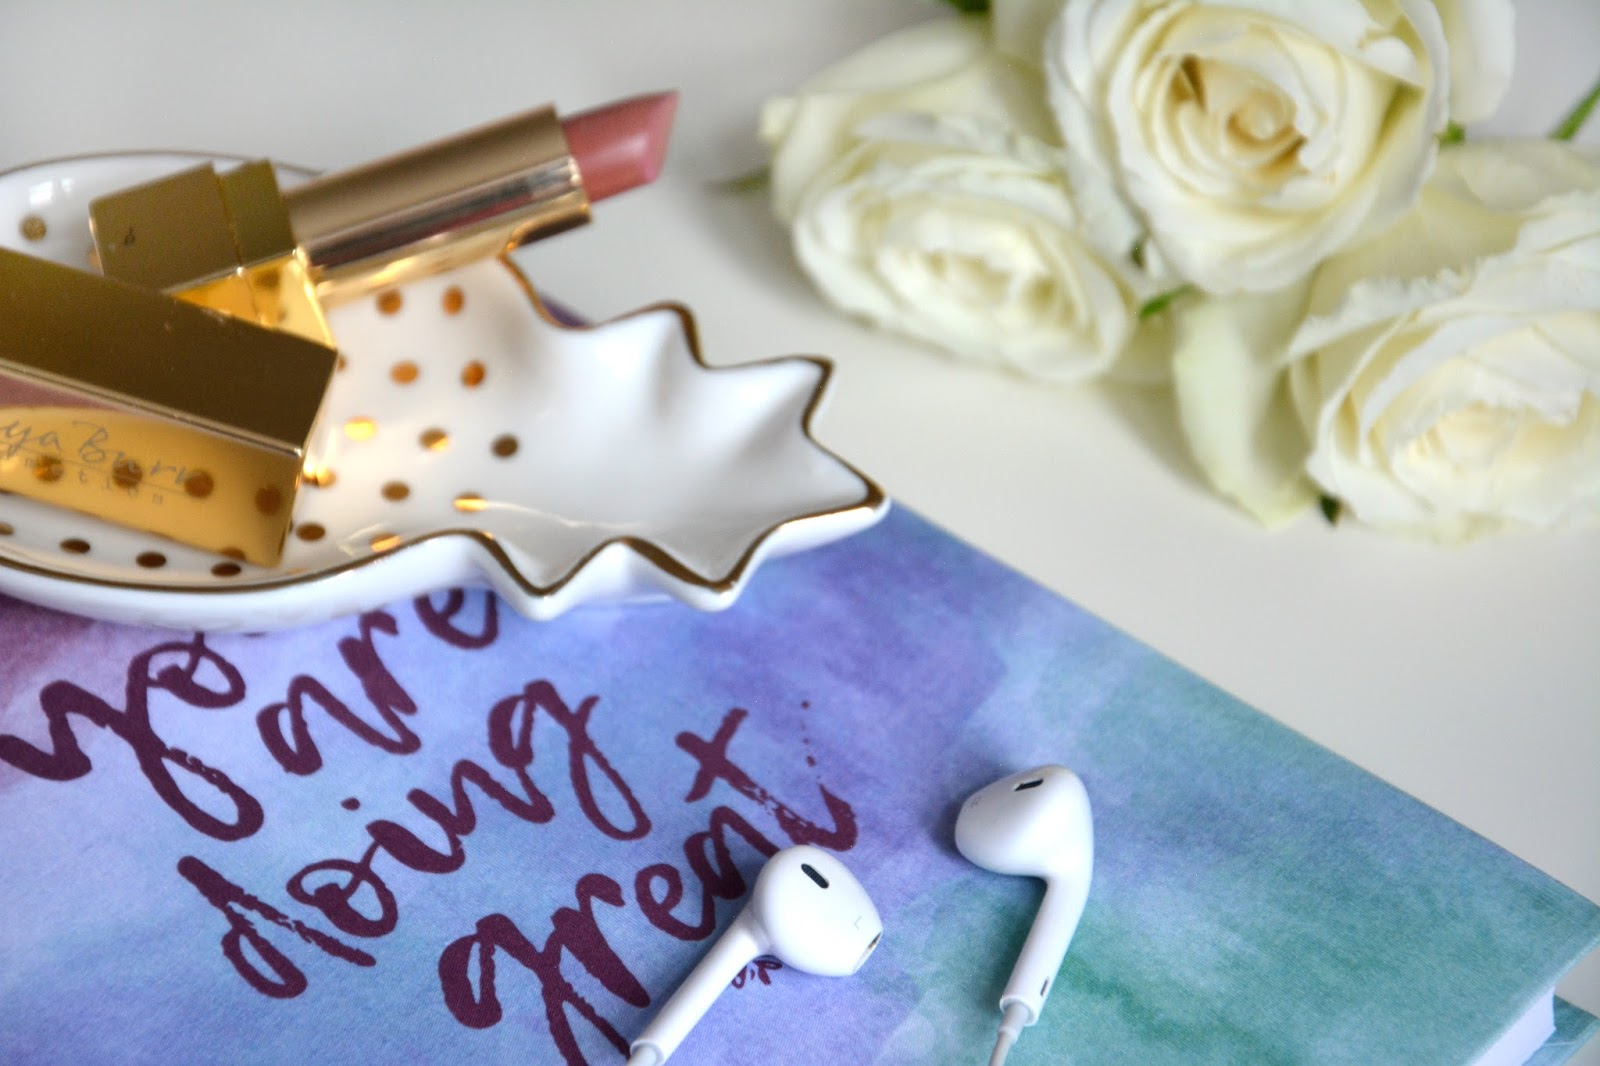 White Roses; Apple EarPods; Maisons Du Monde Pineapple Trinket Dish, Hema Notebook; Tanya Burr Cosmetics Lipstick Pink Cocoa